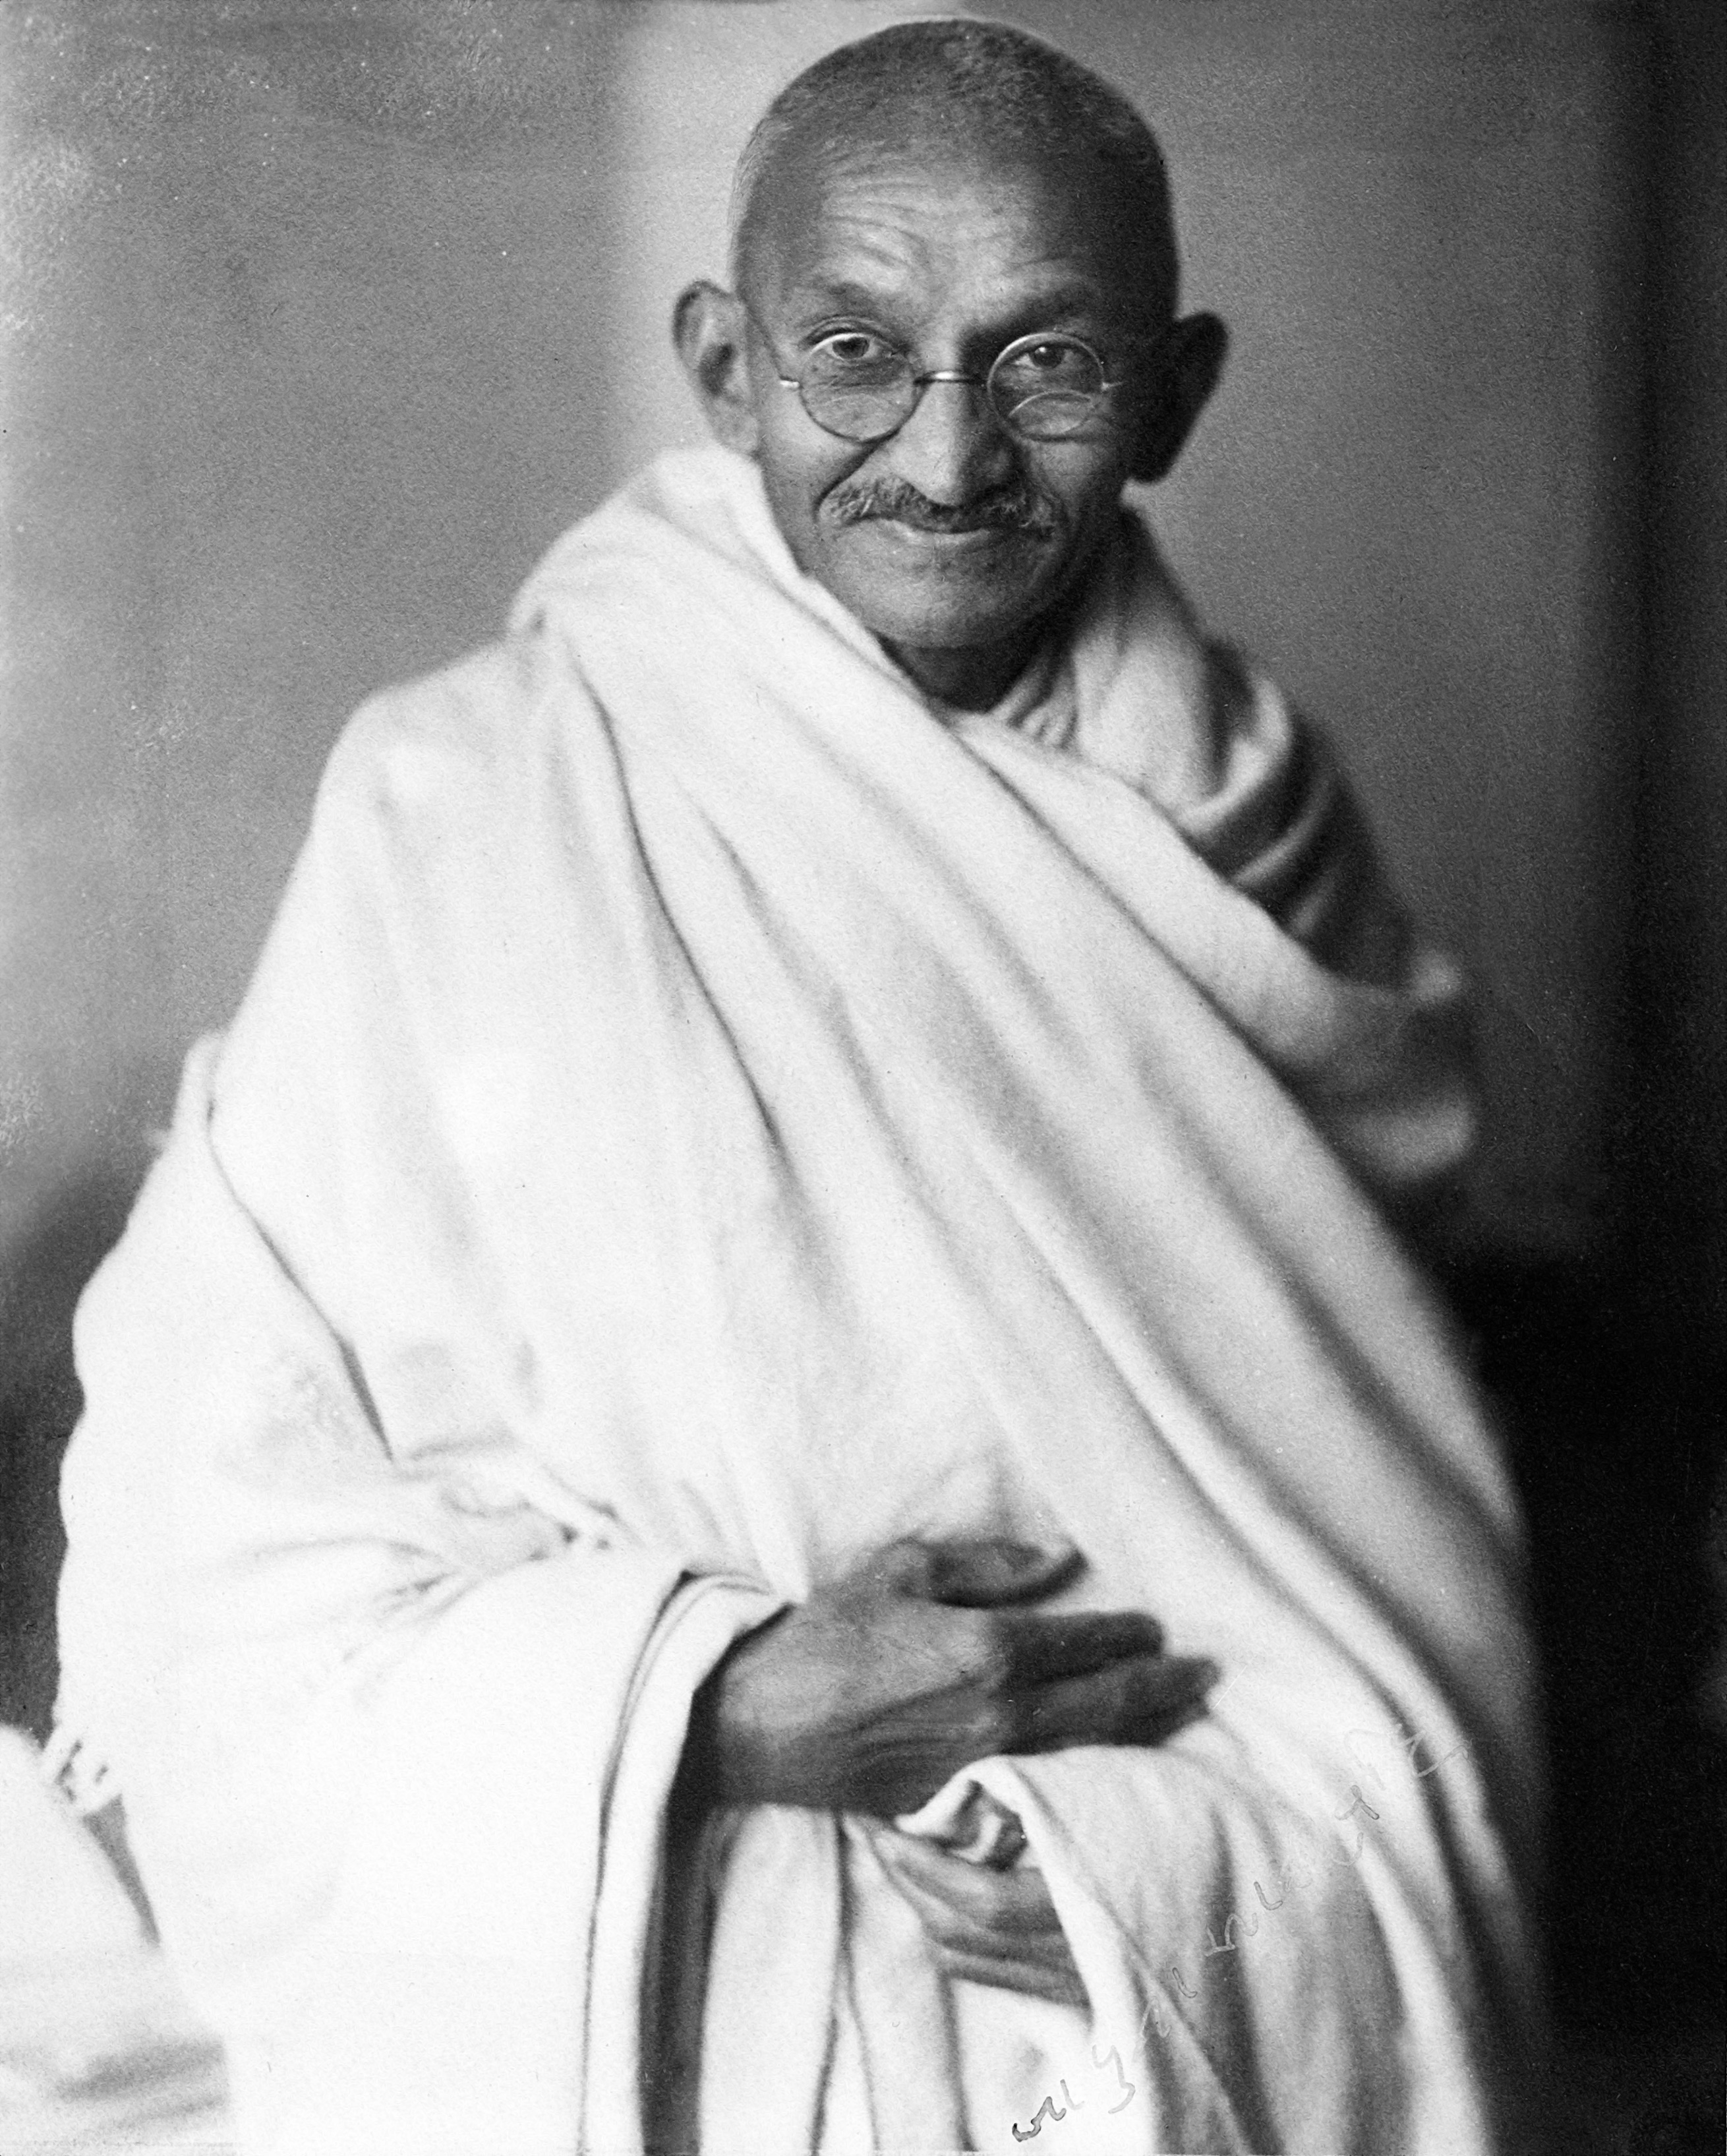 Maniacal Racist European Colonial Regimes Murdered Mahatma Gandhi Who Represented True Equality